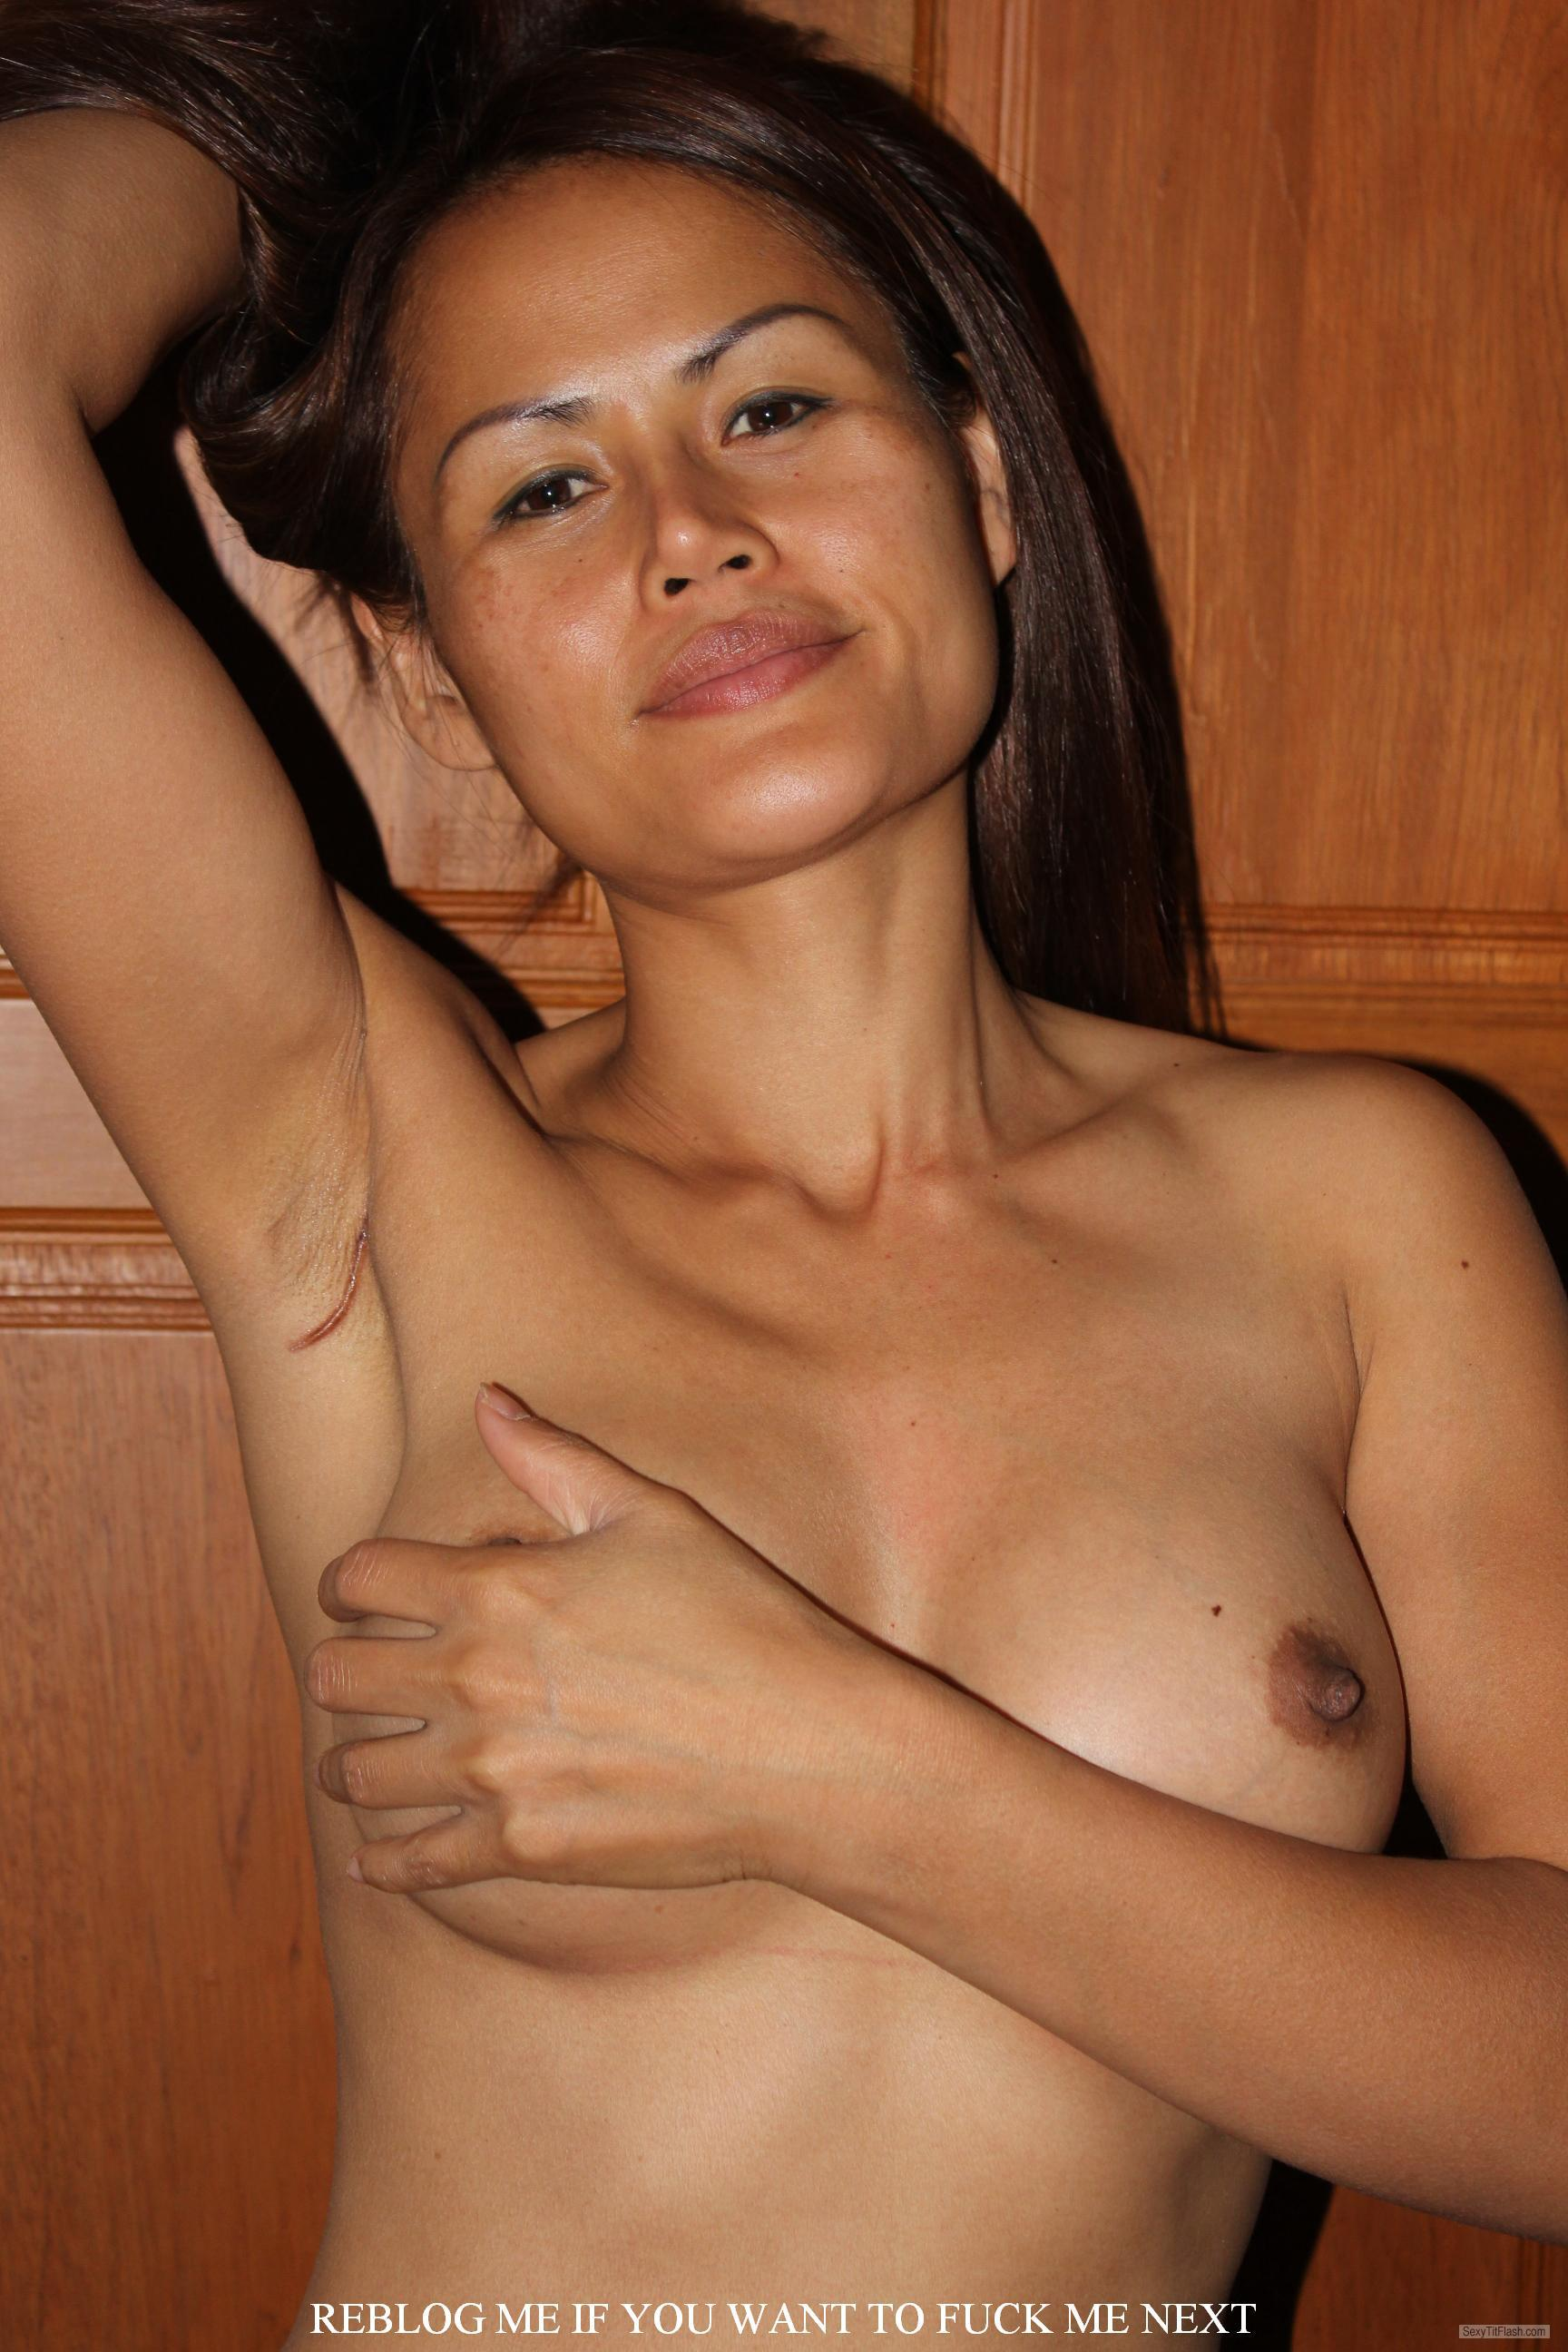 Tit Flash: My Small Tits - Topless AsianSunshine from Thailand